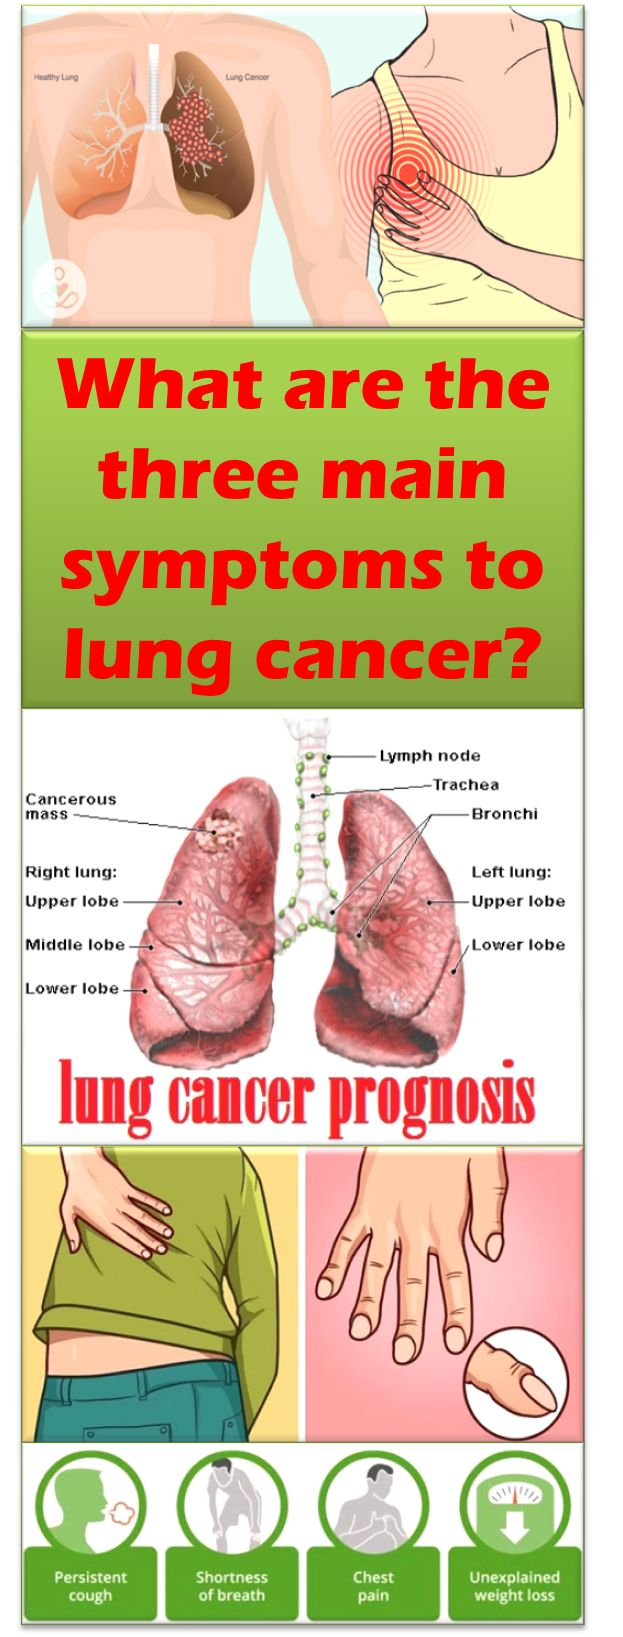 The main three symptoms to lung cancer that should not be ignored are shortness of breath, pain when breathing or coughing, and existence of a persistent cough, especially if it is accompanied by expectoration of sputum streaked with blood. Additionally, loss of appetite, fatigue, unusual losses of weight are three symptoms, which are indicative of lung cancer...